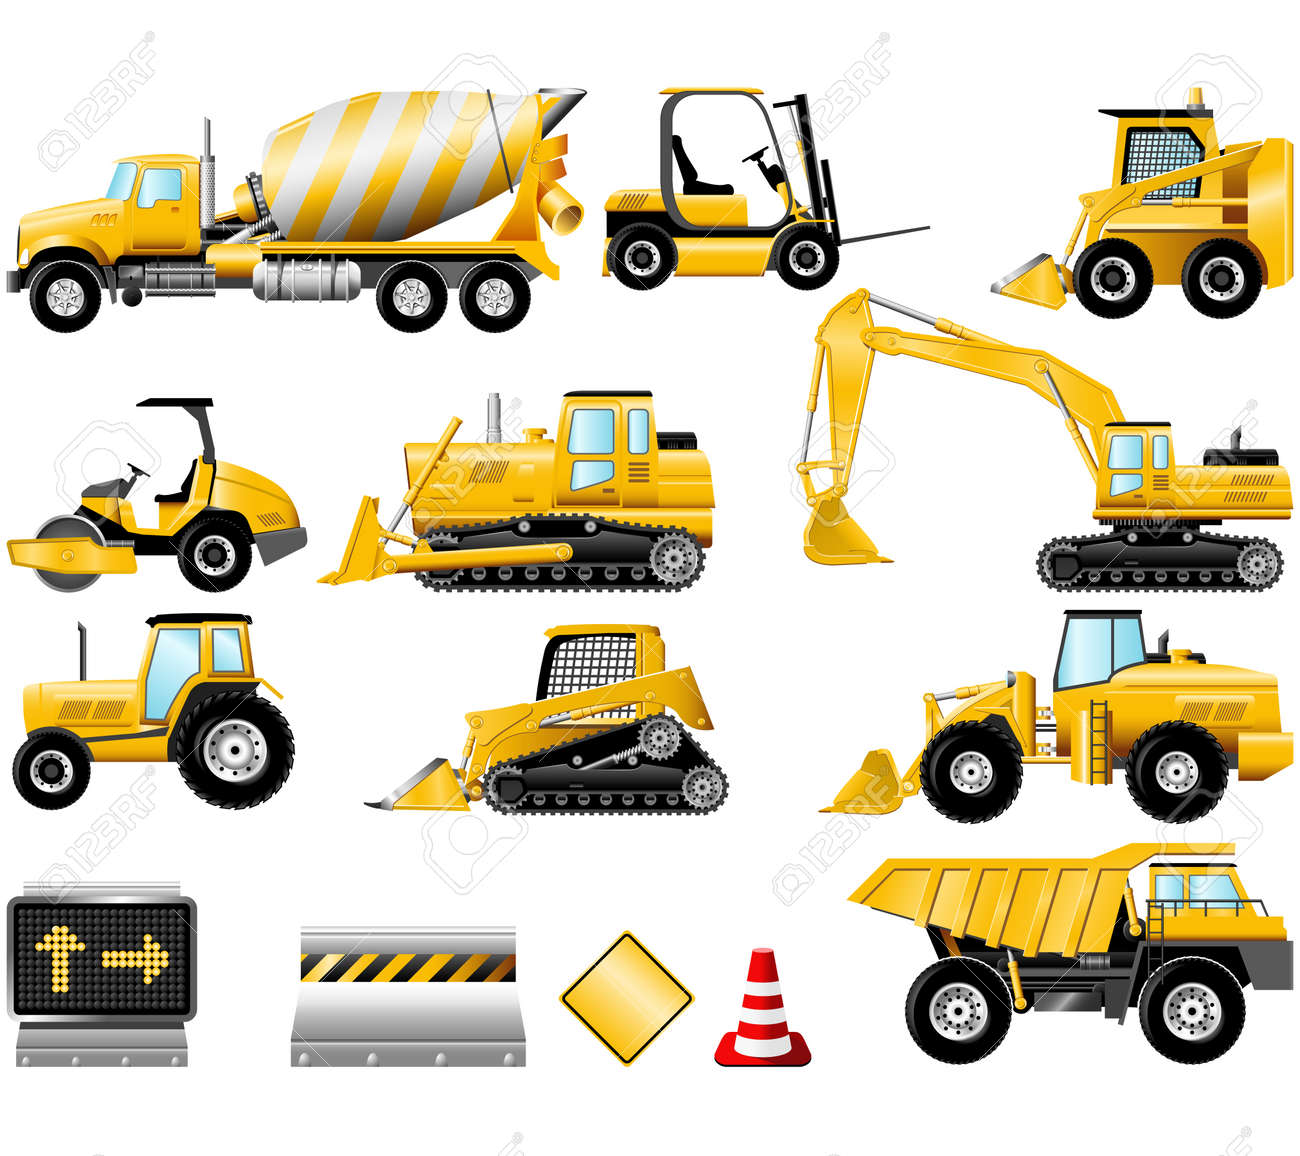 Construction Machinery Icons Isolated On The White Royalty Free